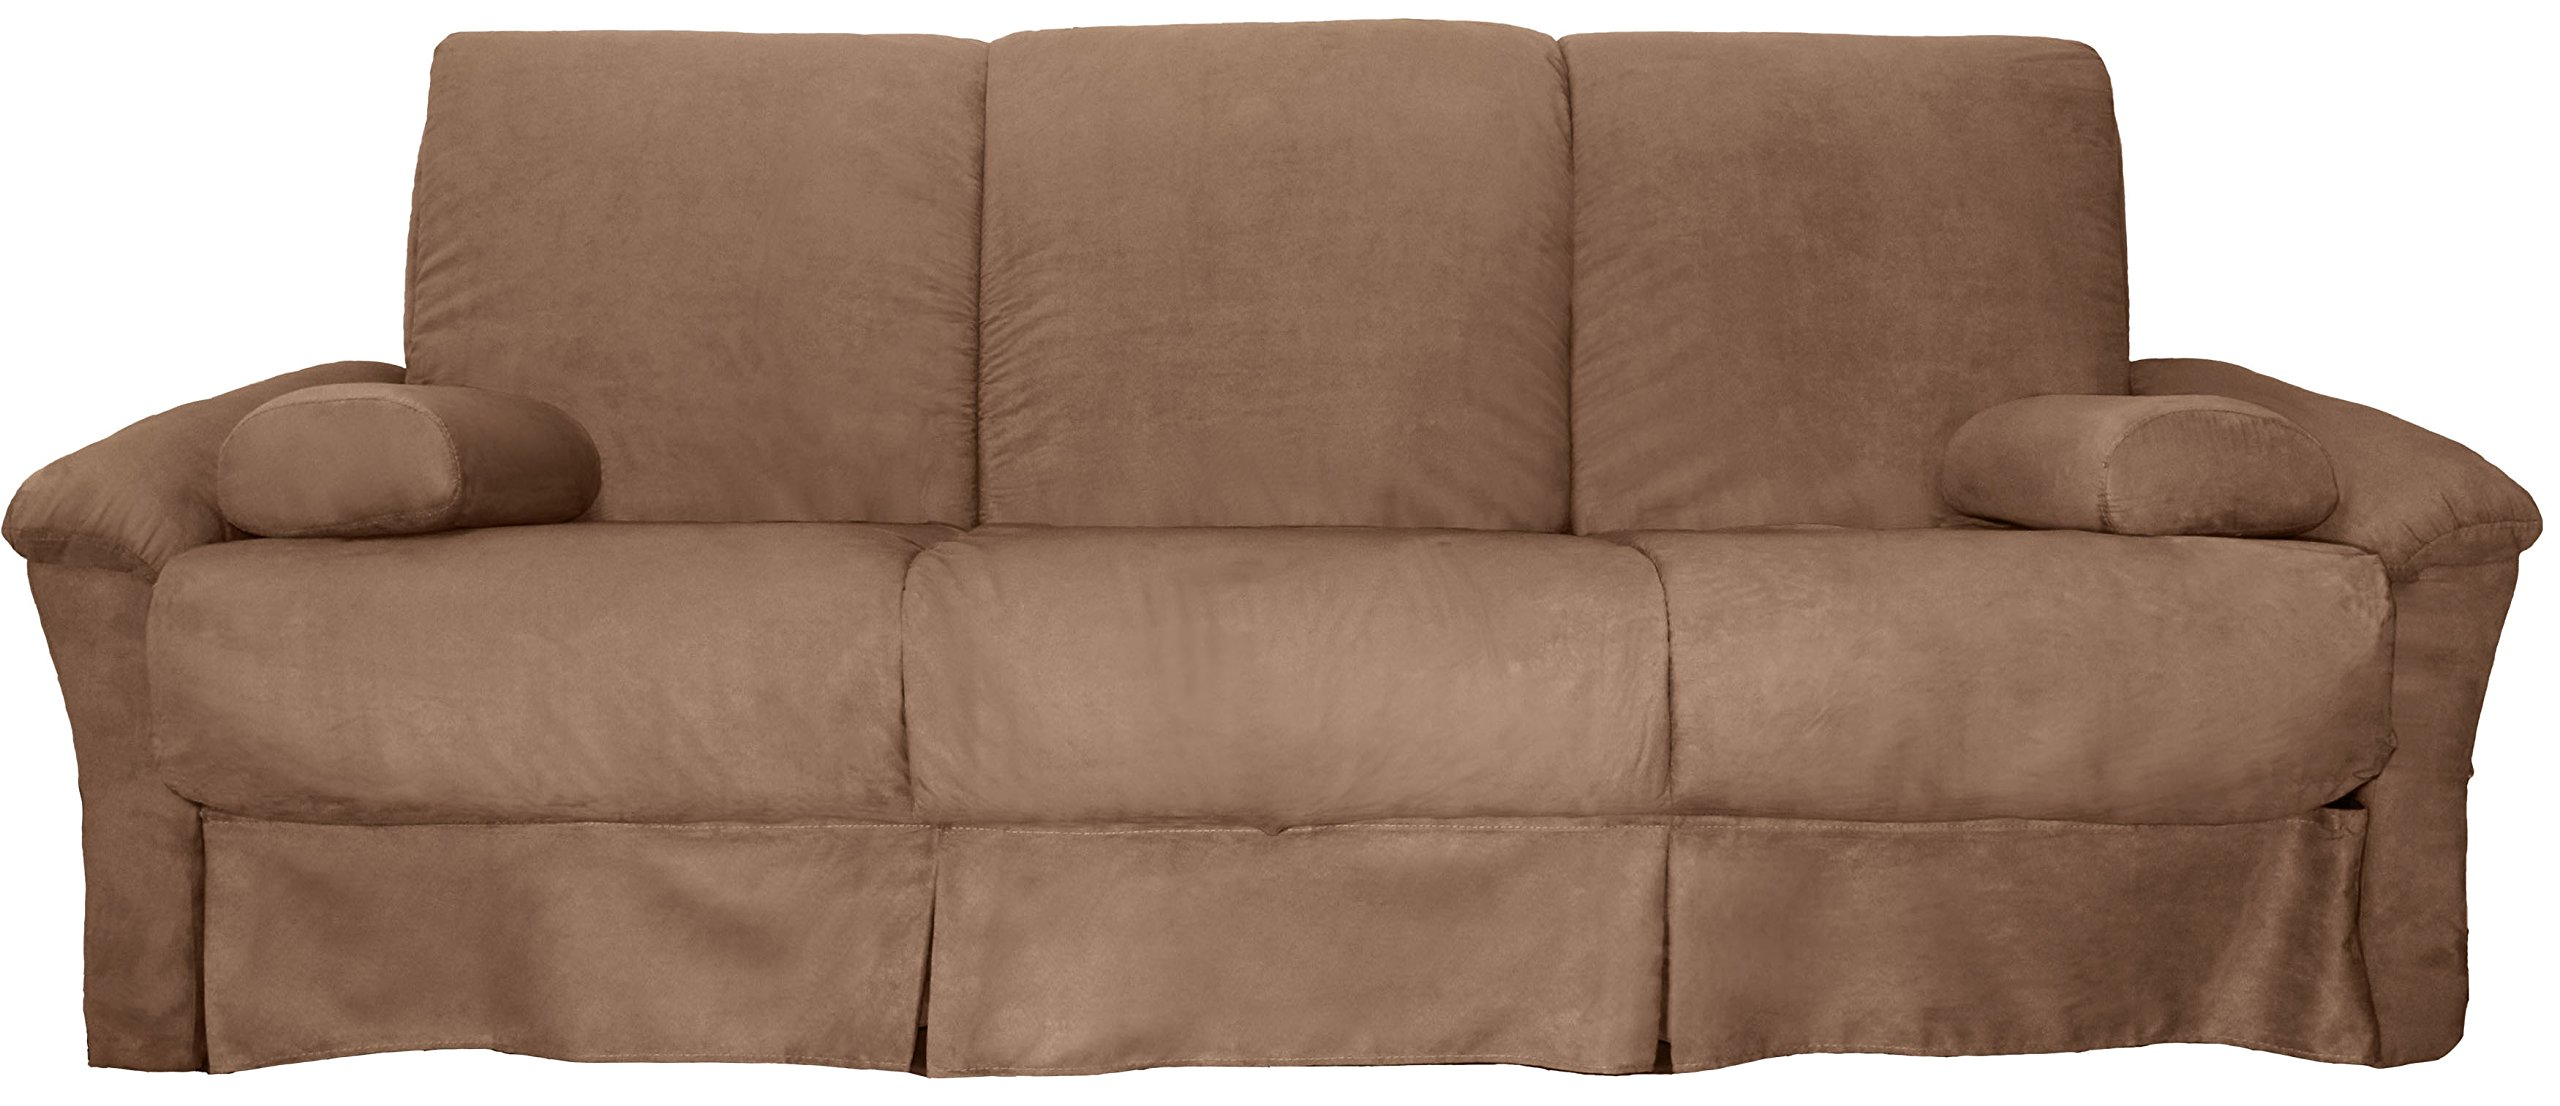 CDM product Tango Perfect Sit & Sleep Pocketed Coil Inner Spring Pillow Top Sofa Sleeper Bed, Full-size, Microfiber Suede Mocha Brown Upholstery big image